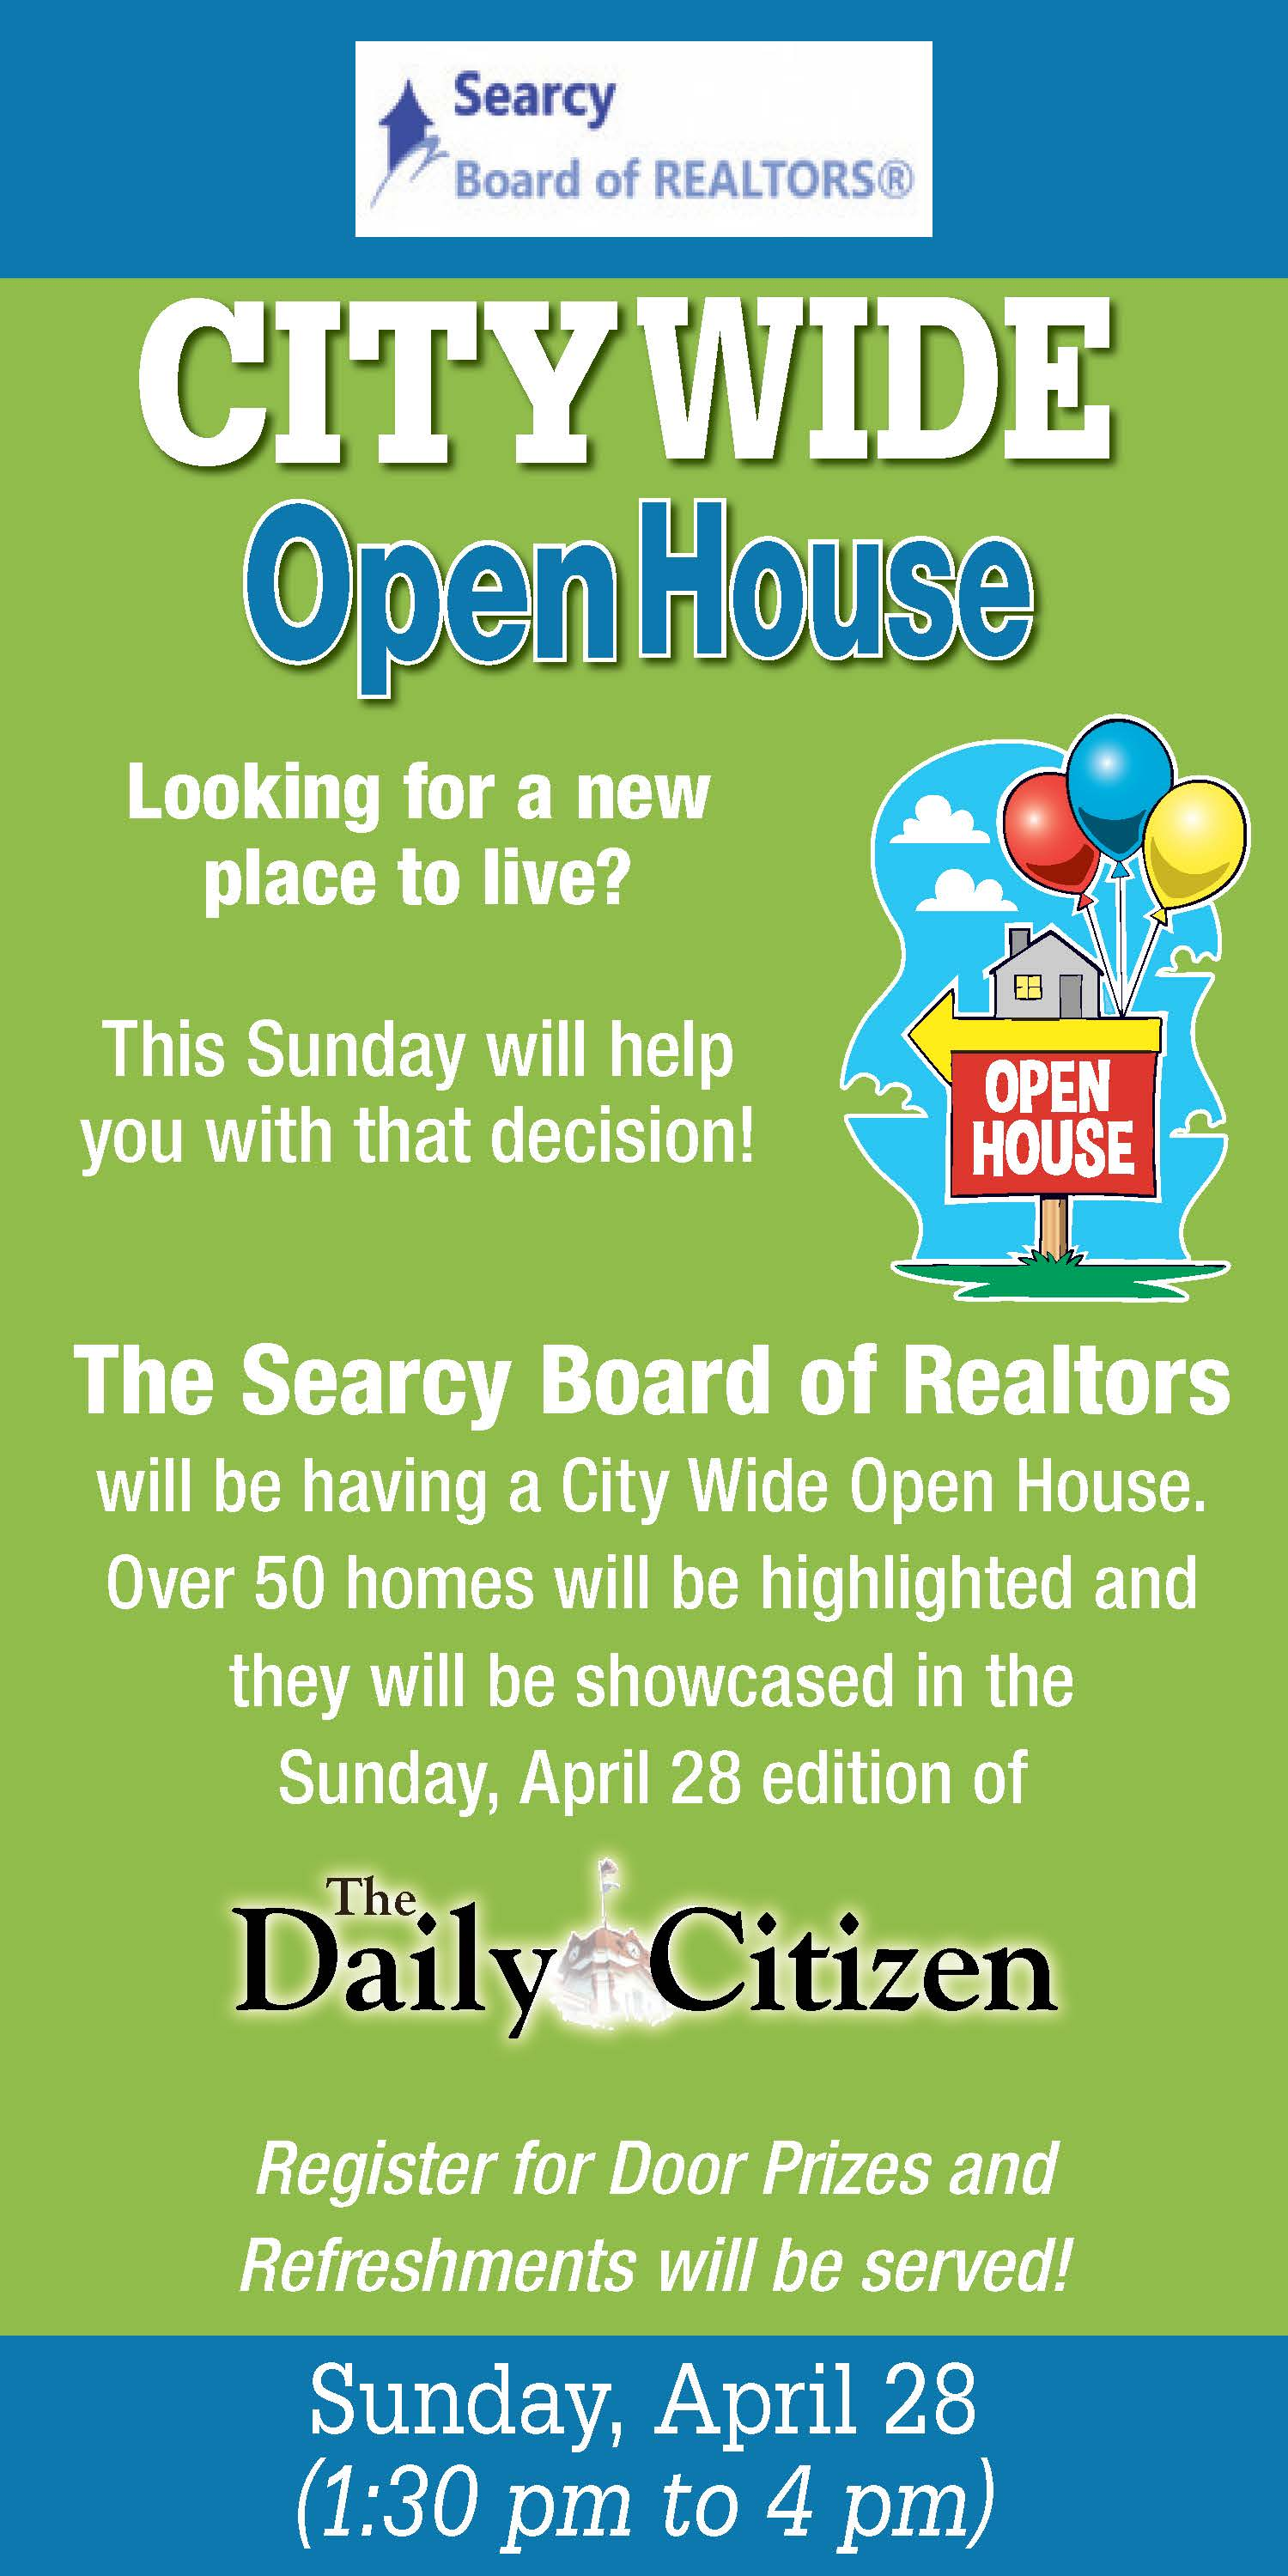 Searcy City Wide Open House Searcy Board of Realtors